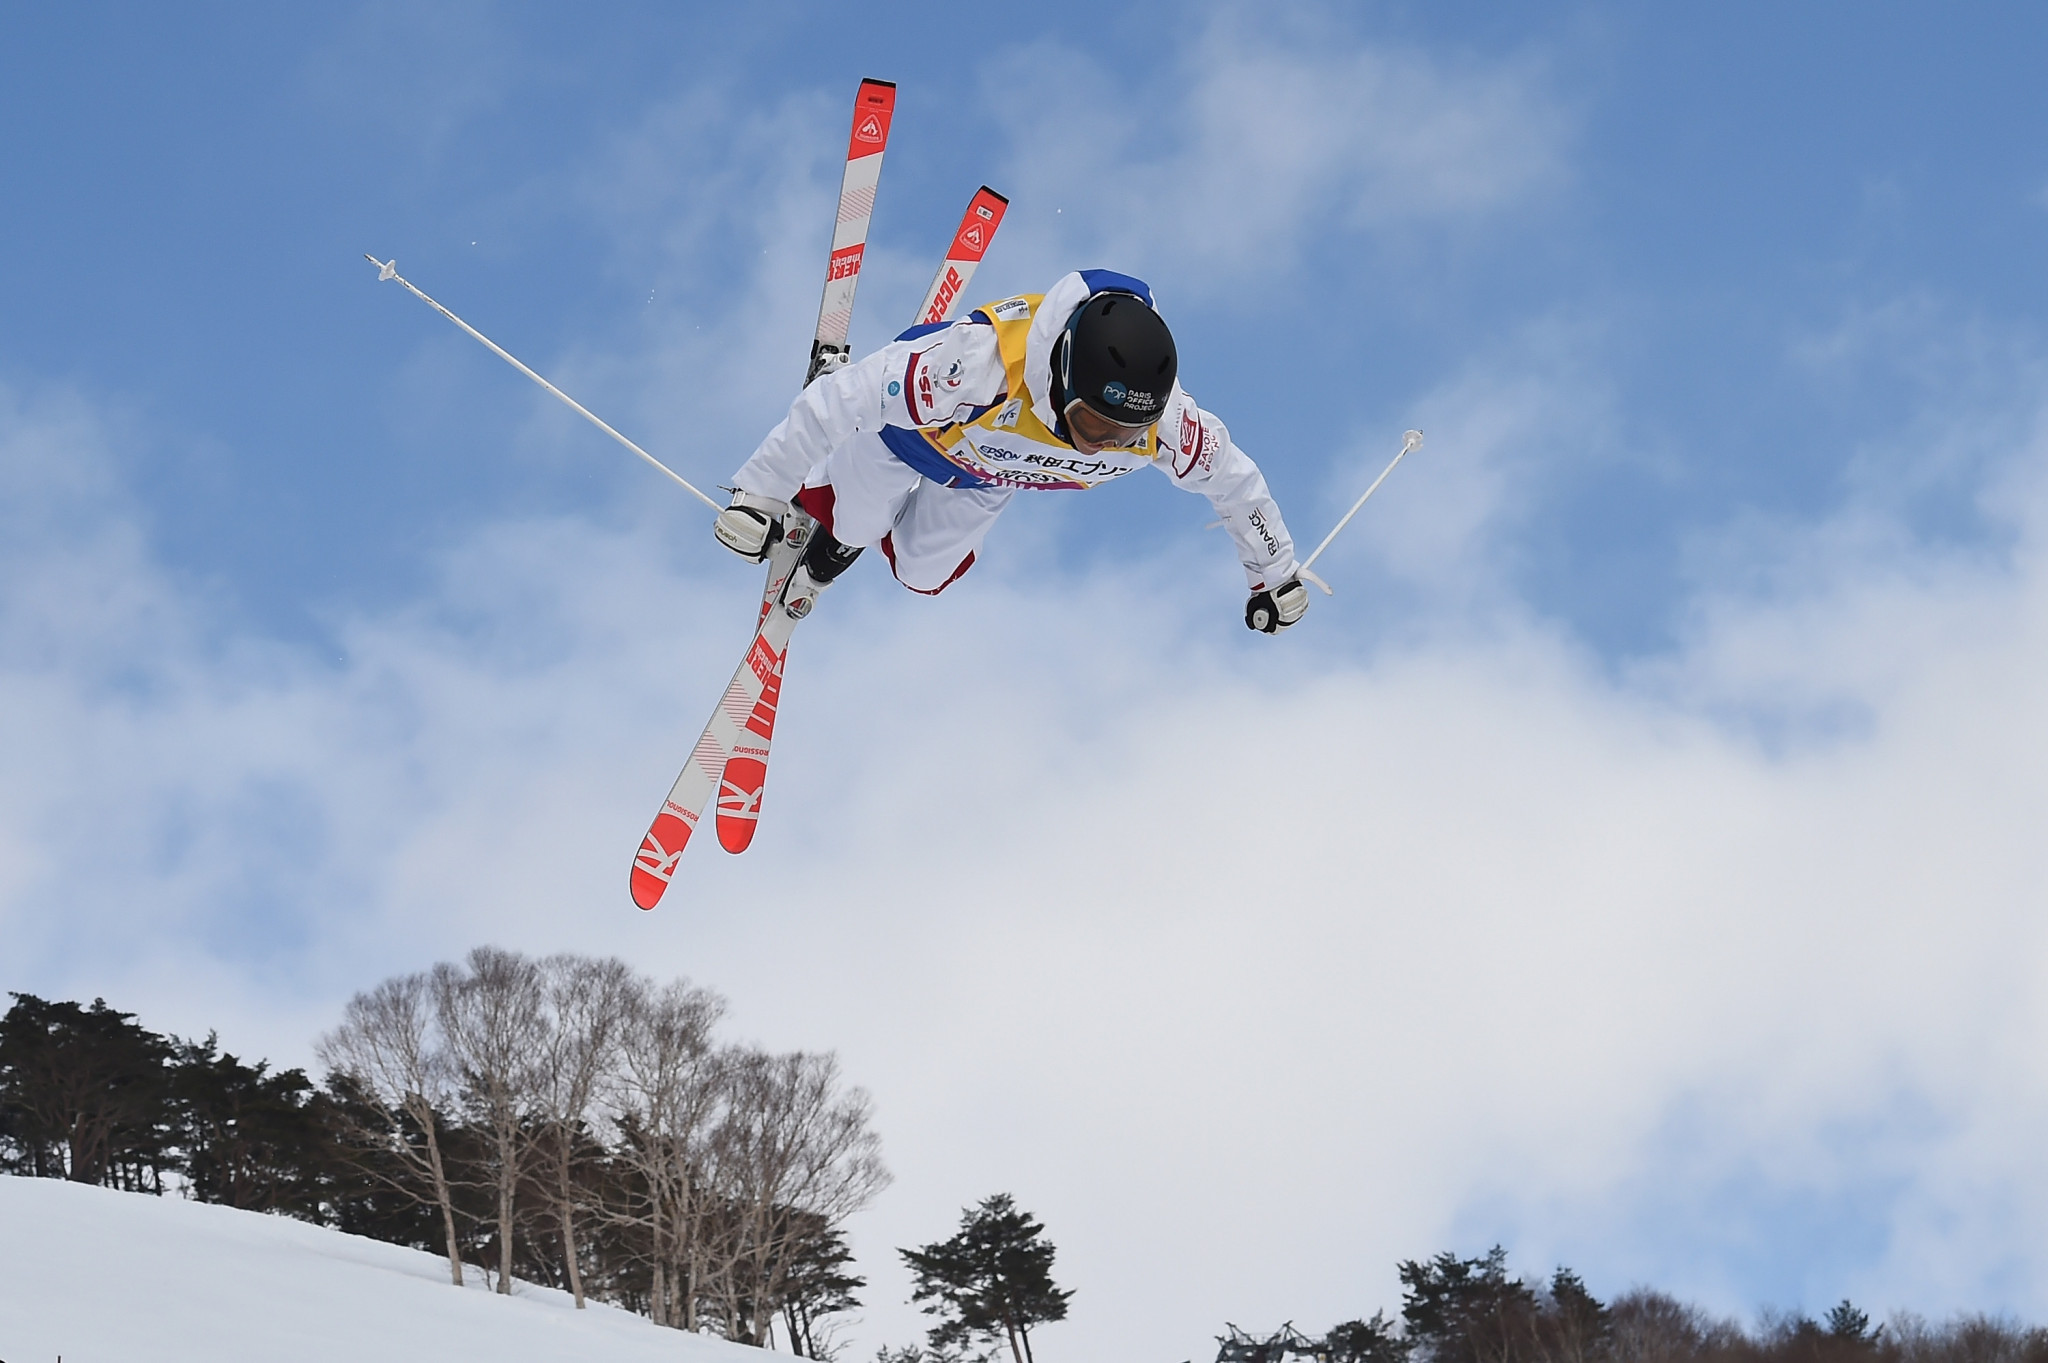 Laffont and Reikherd top qualification at FIS Moguls World Cup in Idre Fjall